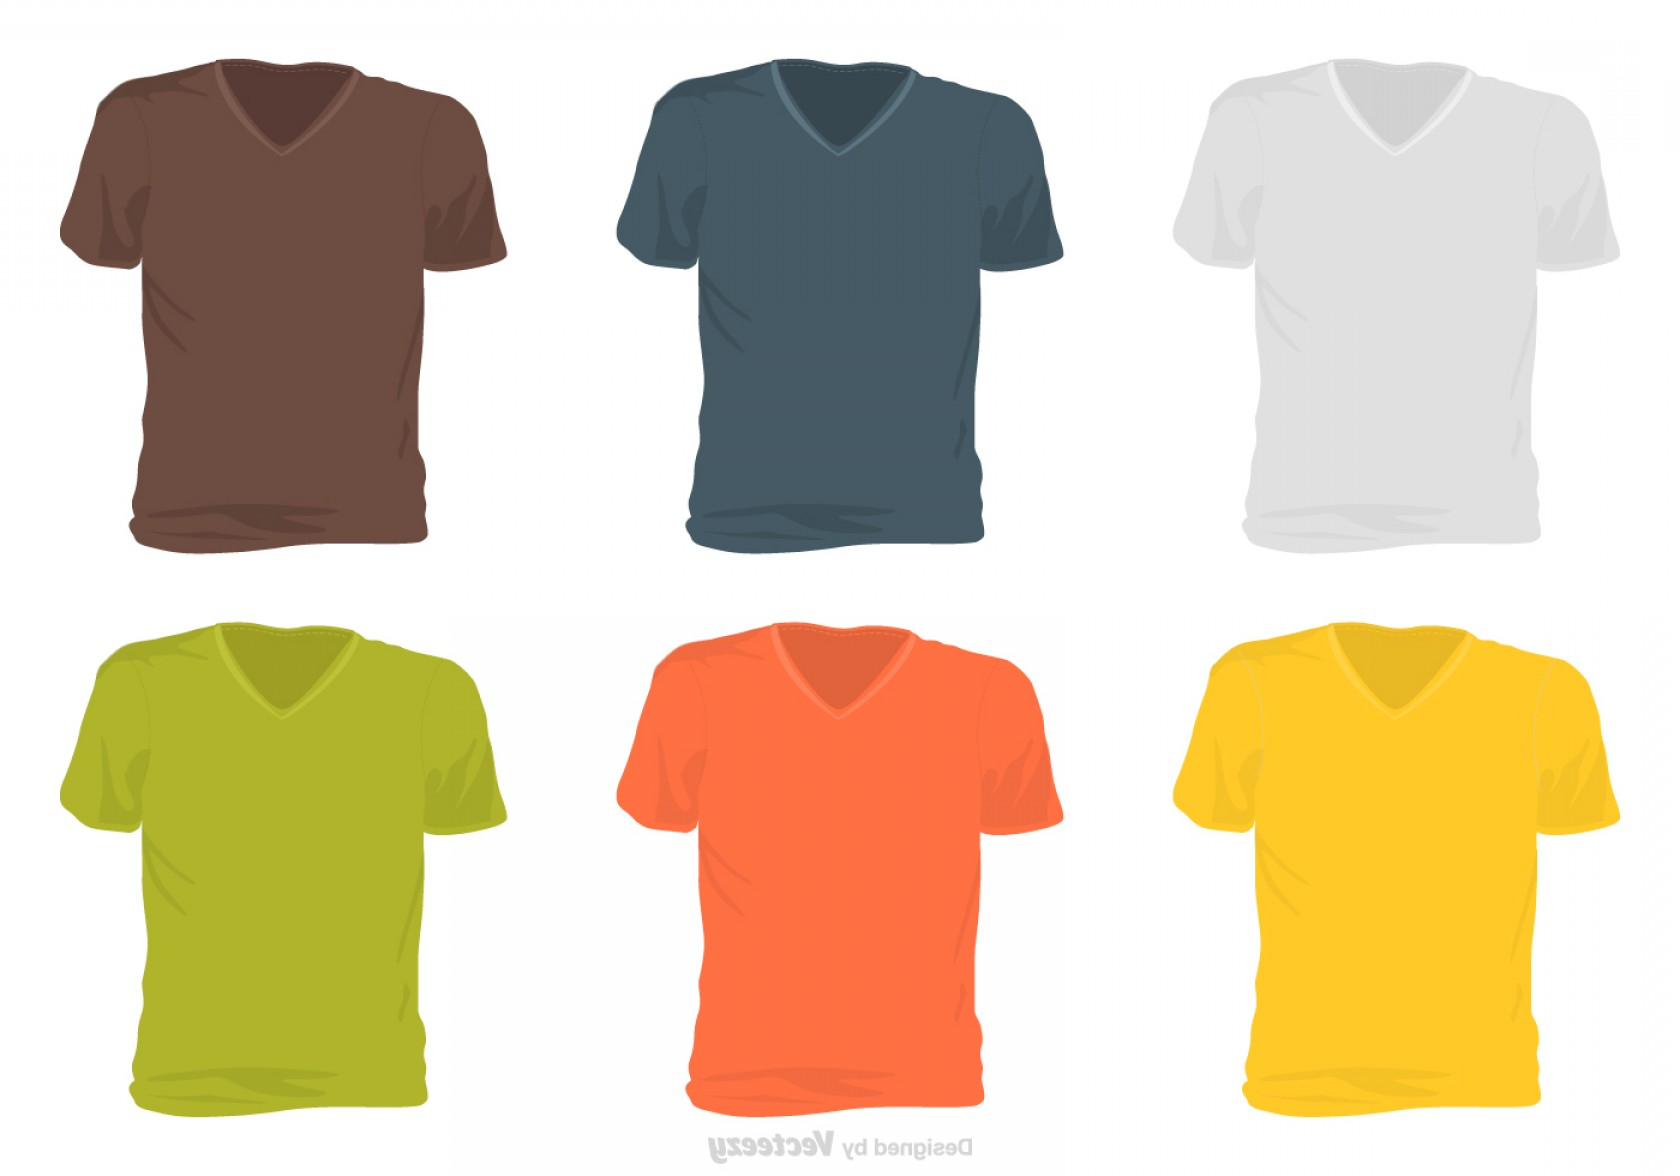 Long Sleeve Jersey Vector Template: Male V Neck Shirt Template Vector